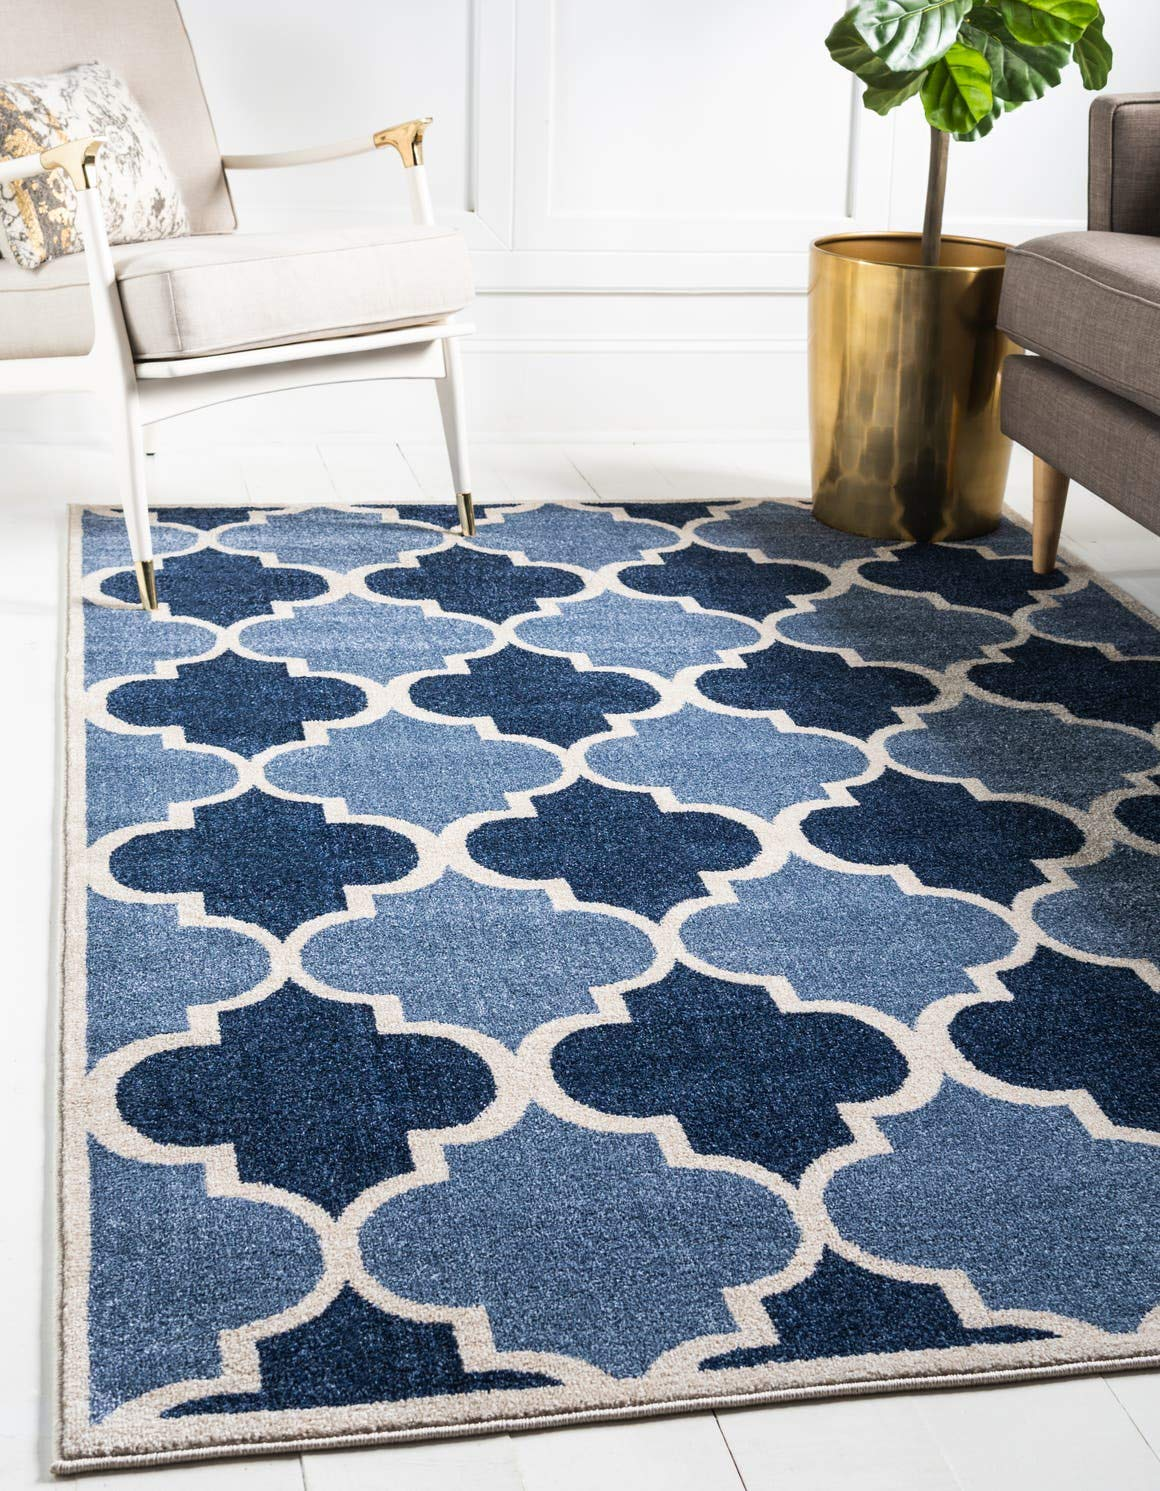 Unique Loom Trellis Collection Moroccan Lattice Light Blue Area Rug 5 0 x 8 0